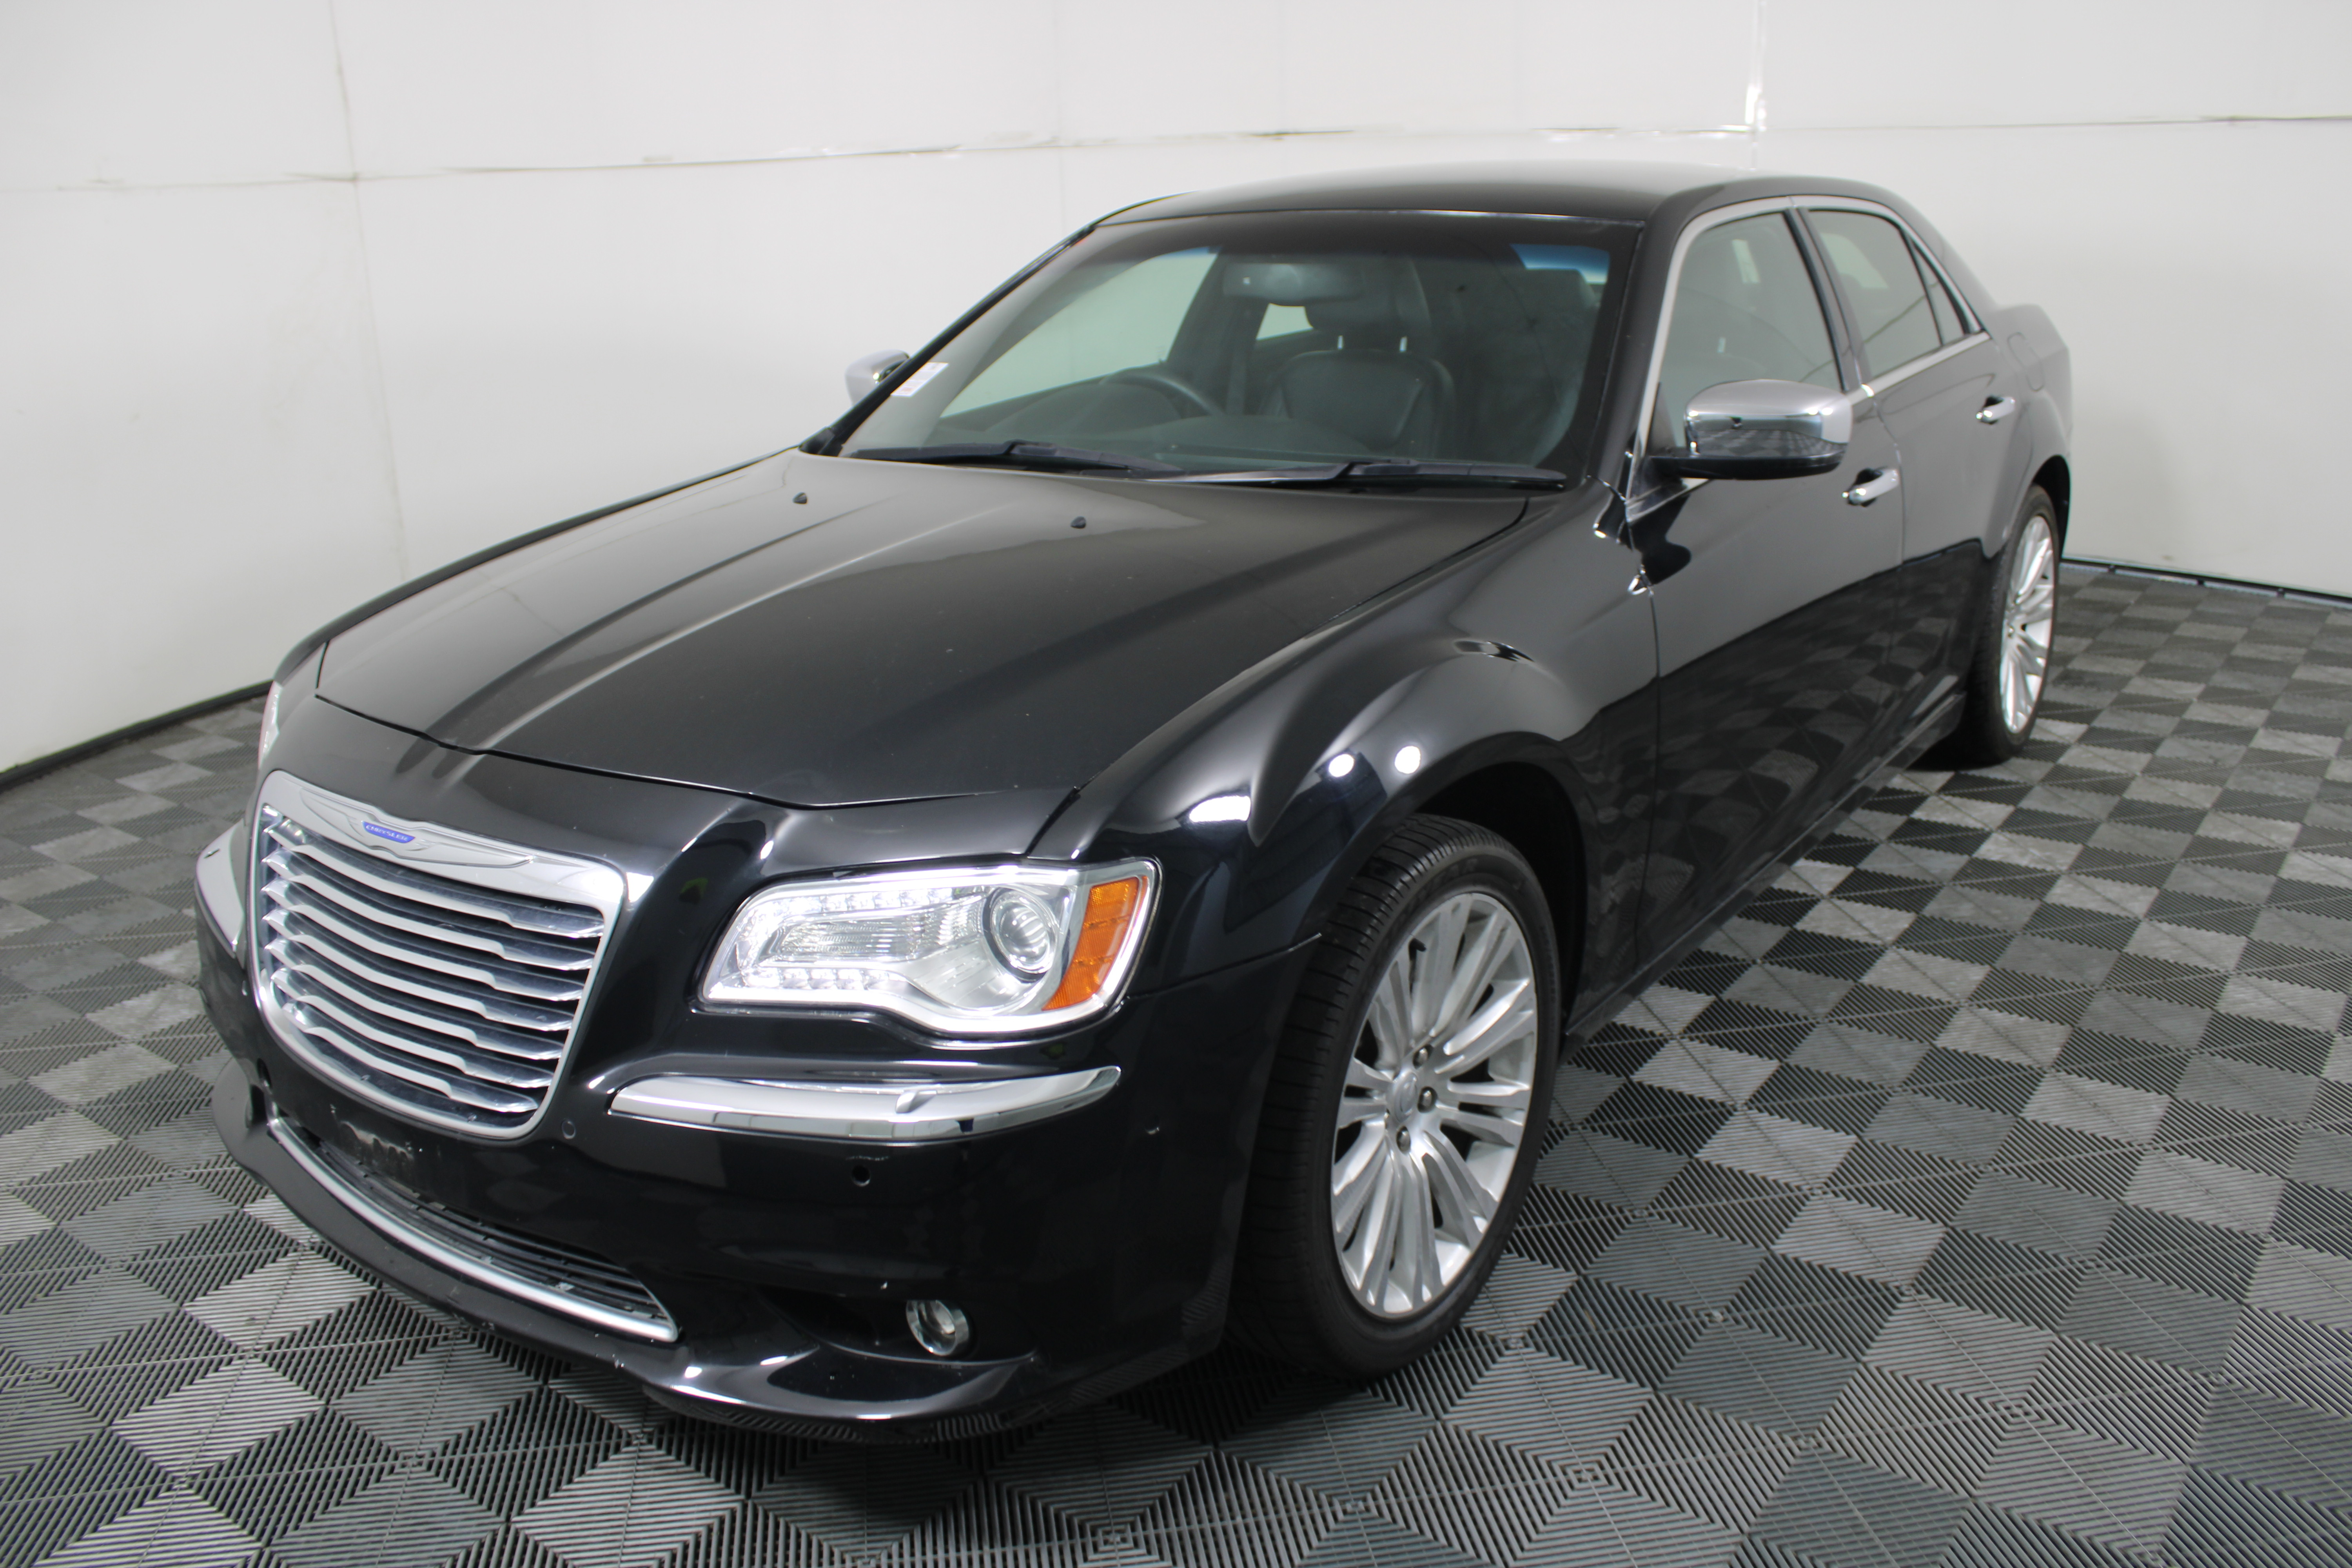 2013 Chrysler 300 C LX Automatic - 8 Speed Sedan